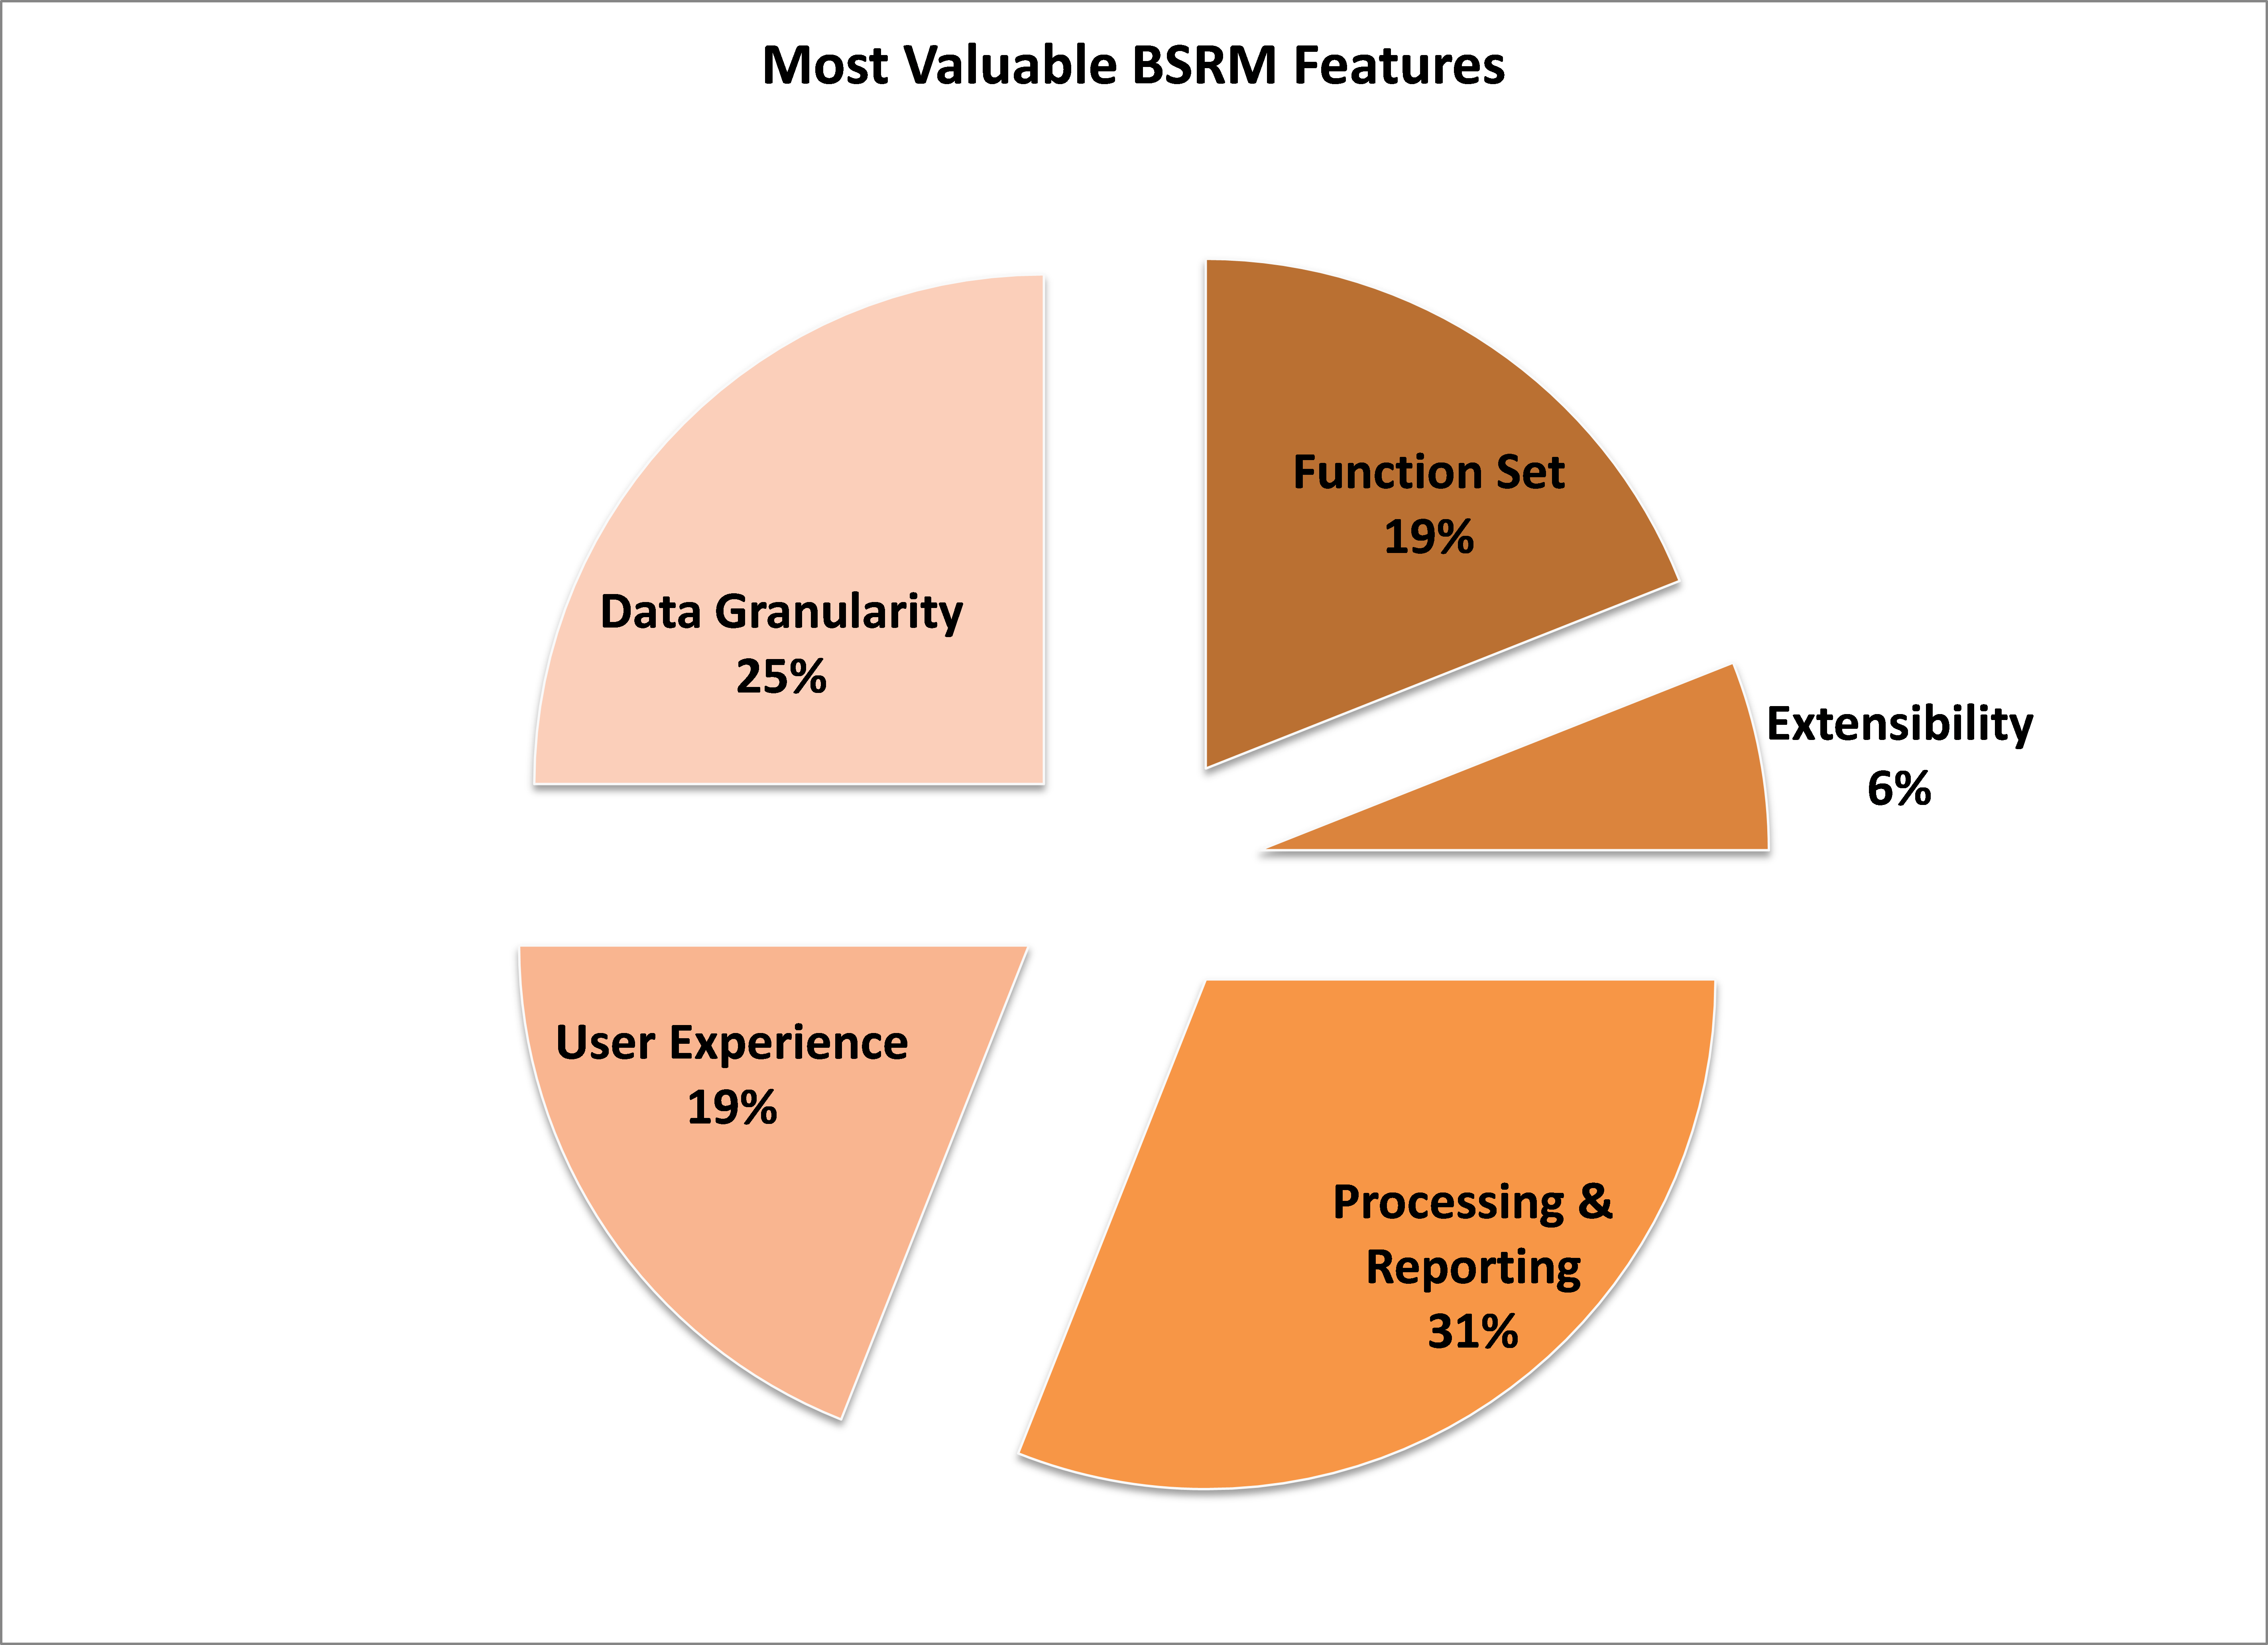 Graph shows response distribution of most valuable BSRM features